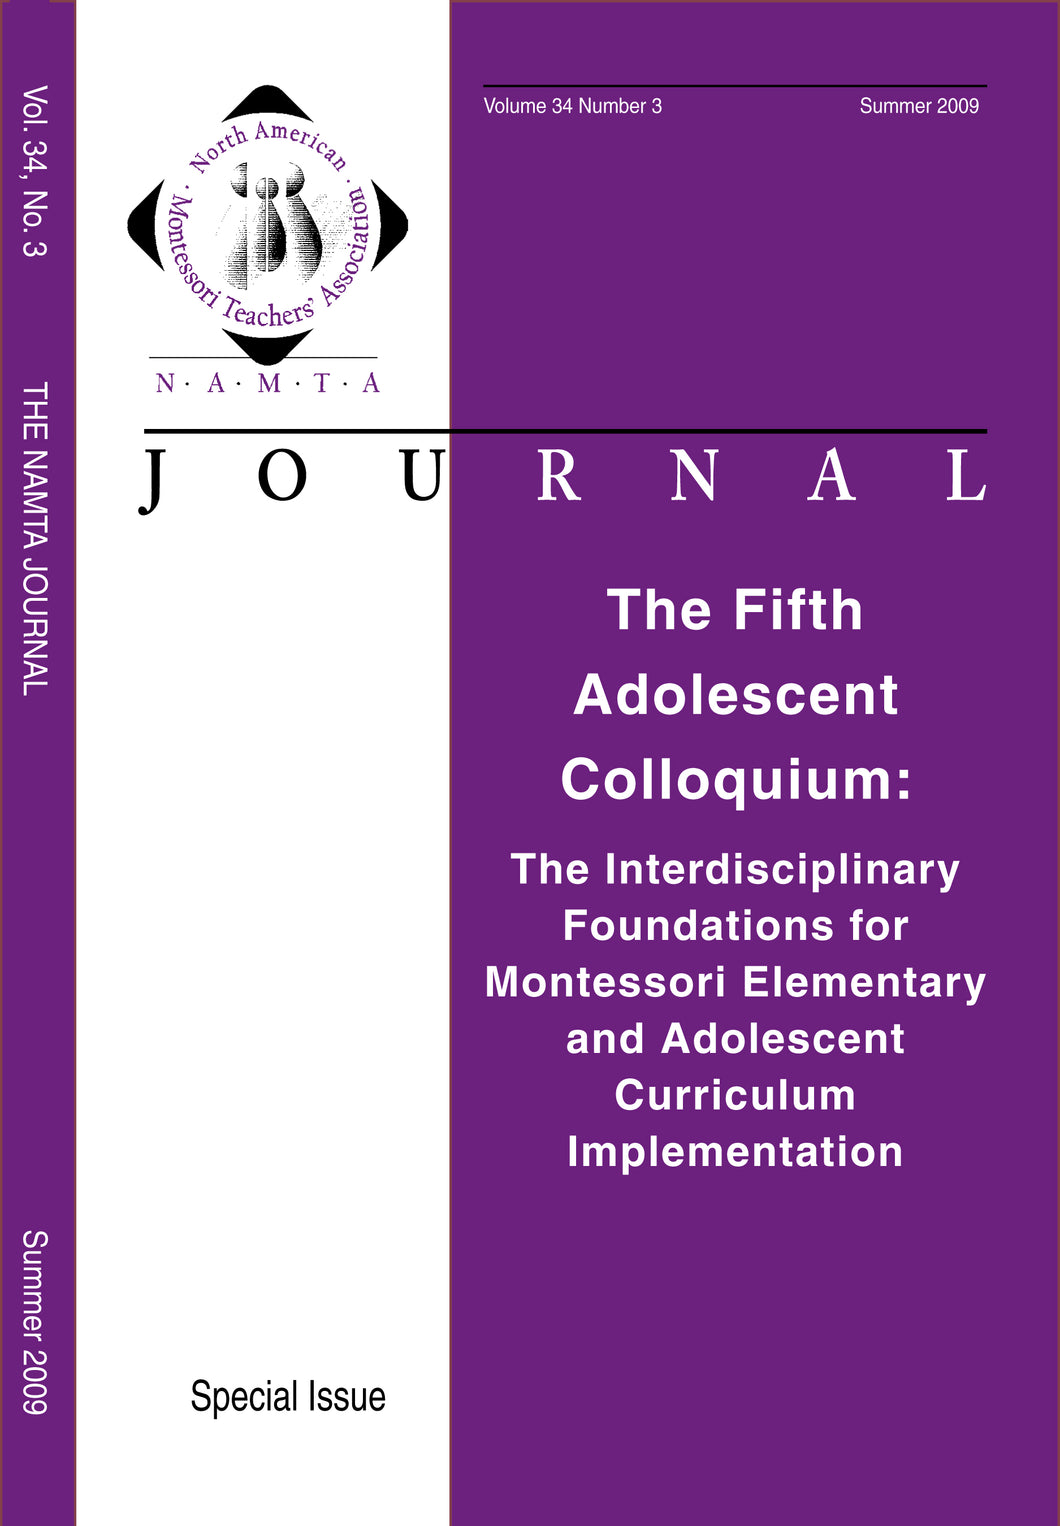 Vol 34, No 3: The Fifth Adolescent Colloquium:The Interdisciplinary Foundations for Montessori Elementary and Adolescent Curriculum Implementation